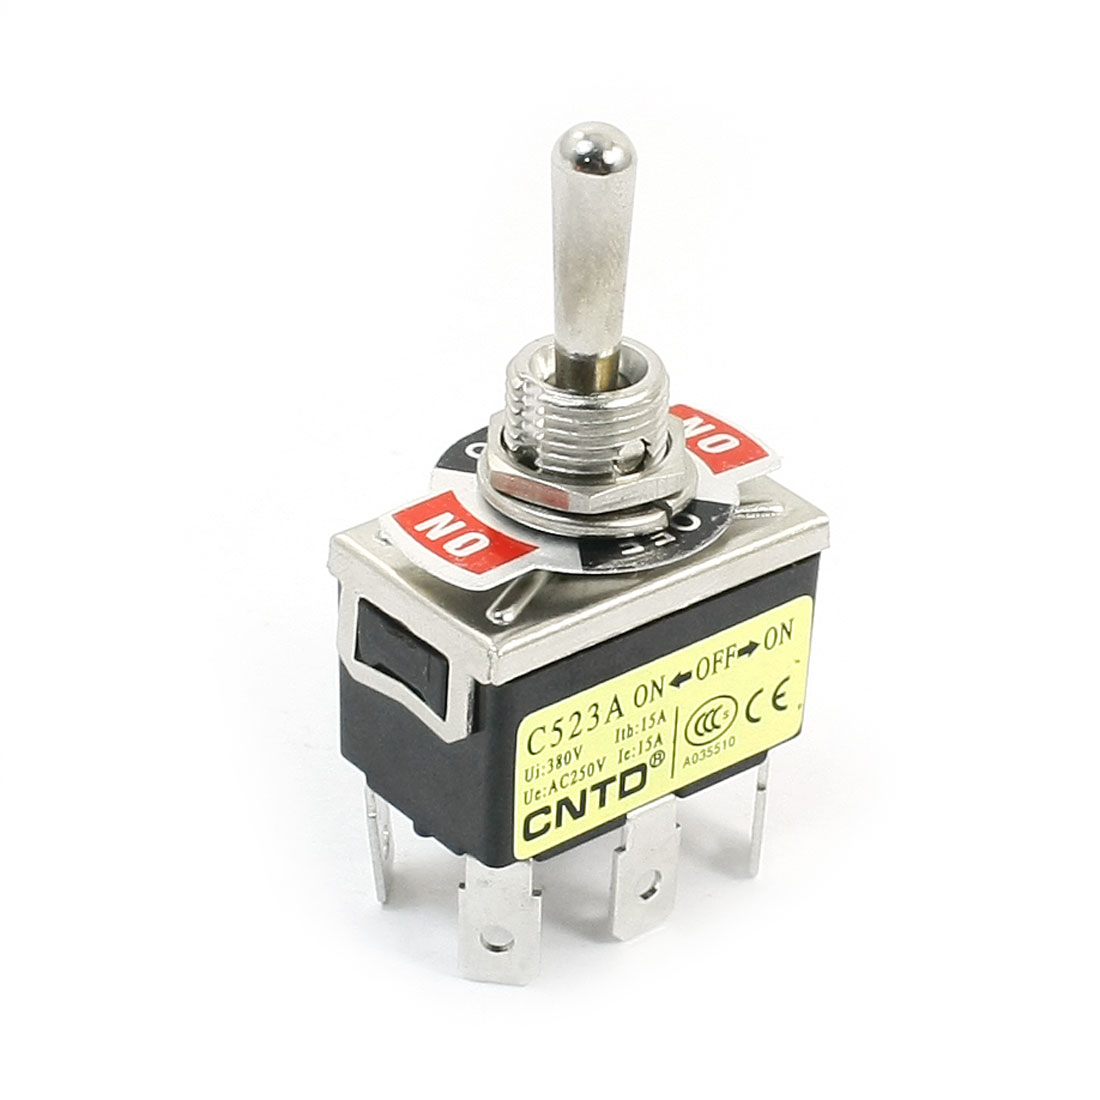 DPDT 3 Positions ON/OFF/ON 6-Terminals Toggle Switch Black AC250V 15A